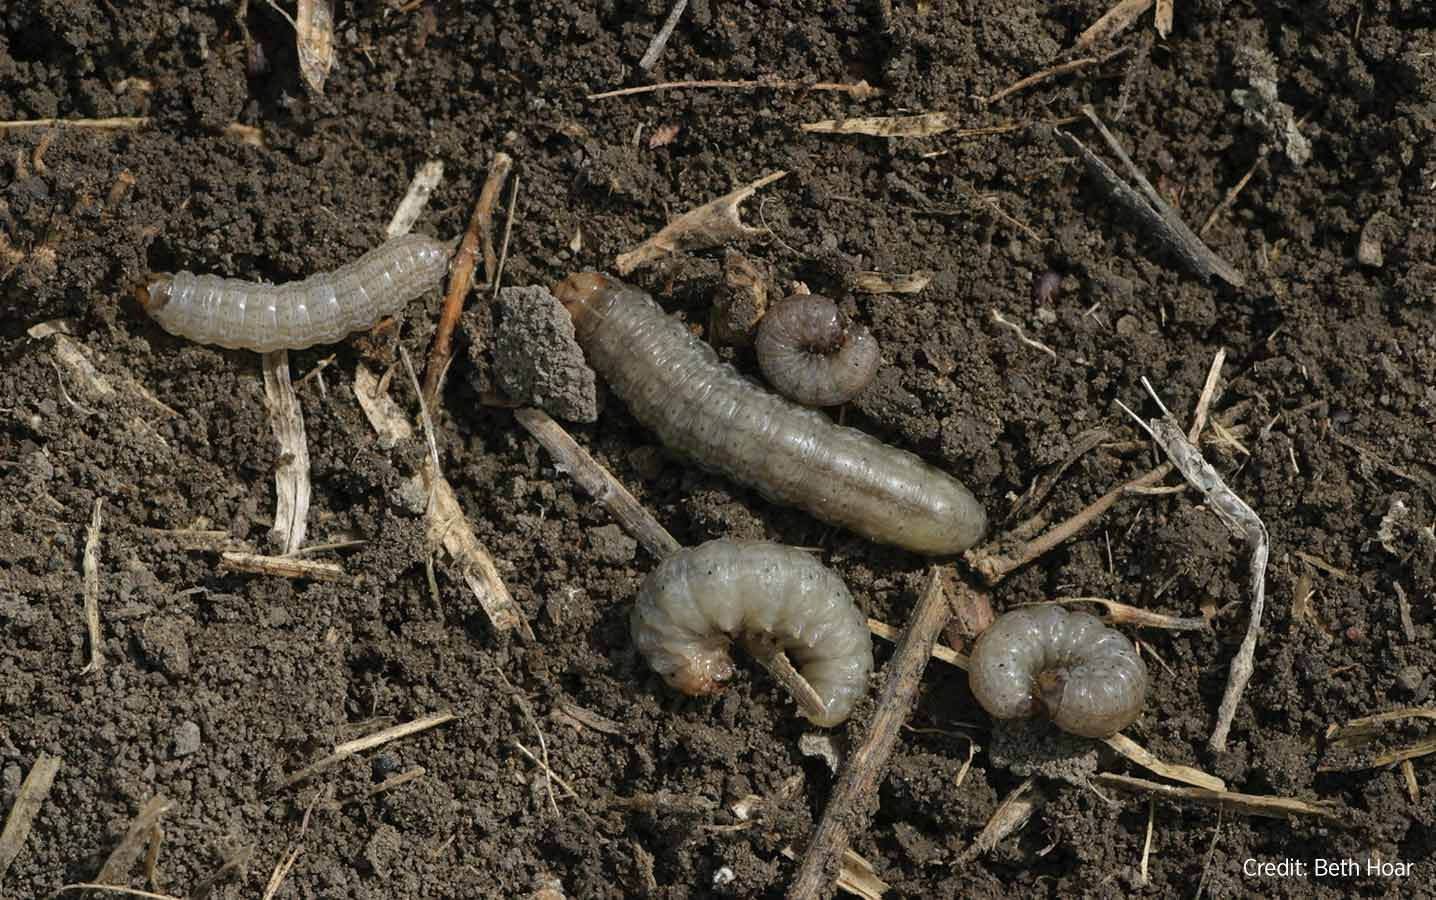 During cutworm outbreaks, accurate and rapid identification is required to maximize control methods.